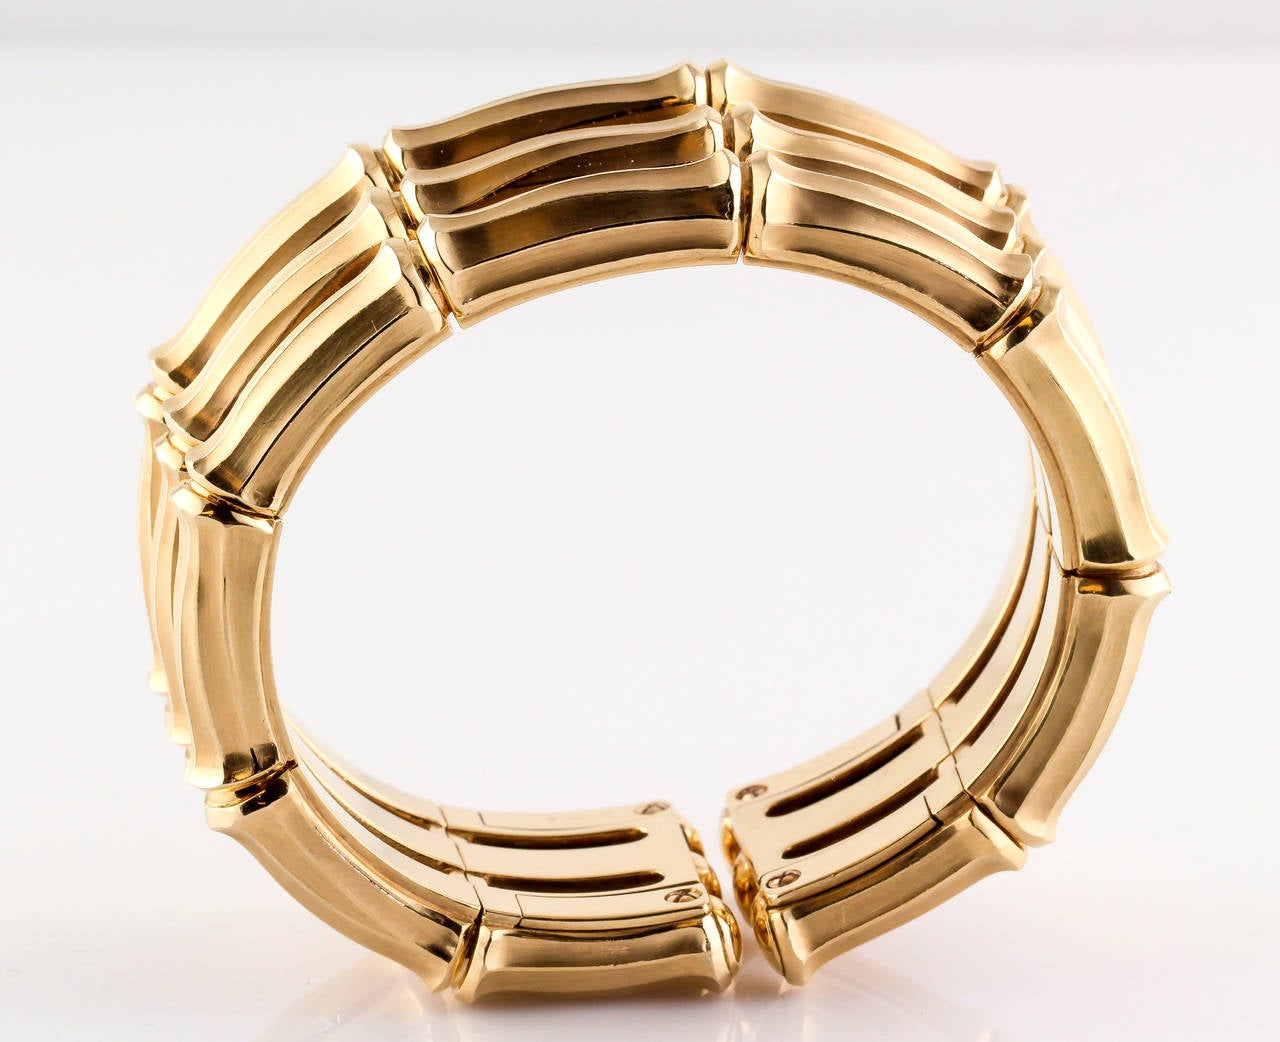 cartier bamboo two tone gold cuff bracelet at 1stdibs. Black Bedroom Furniture Sets. Home Design Ideas